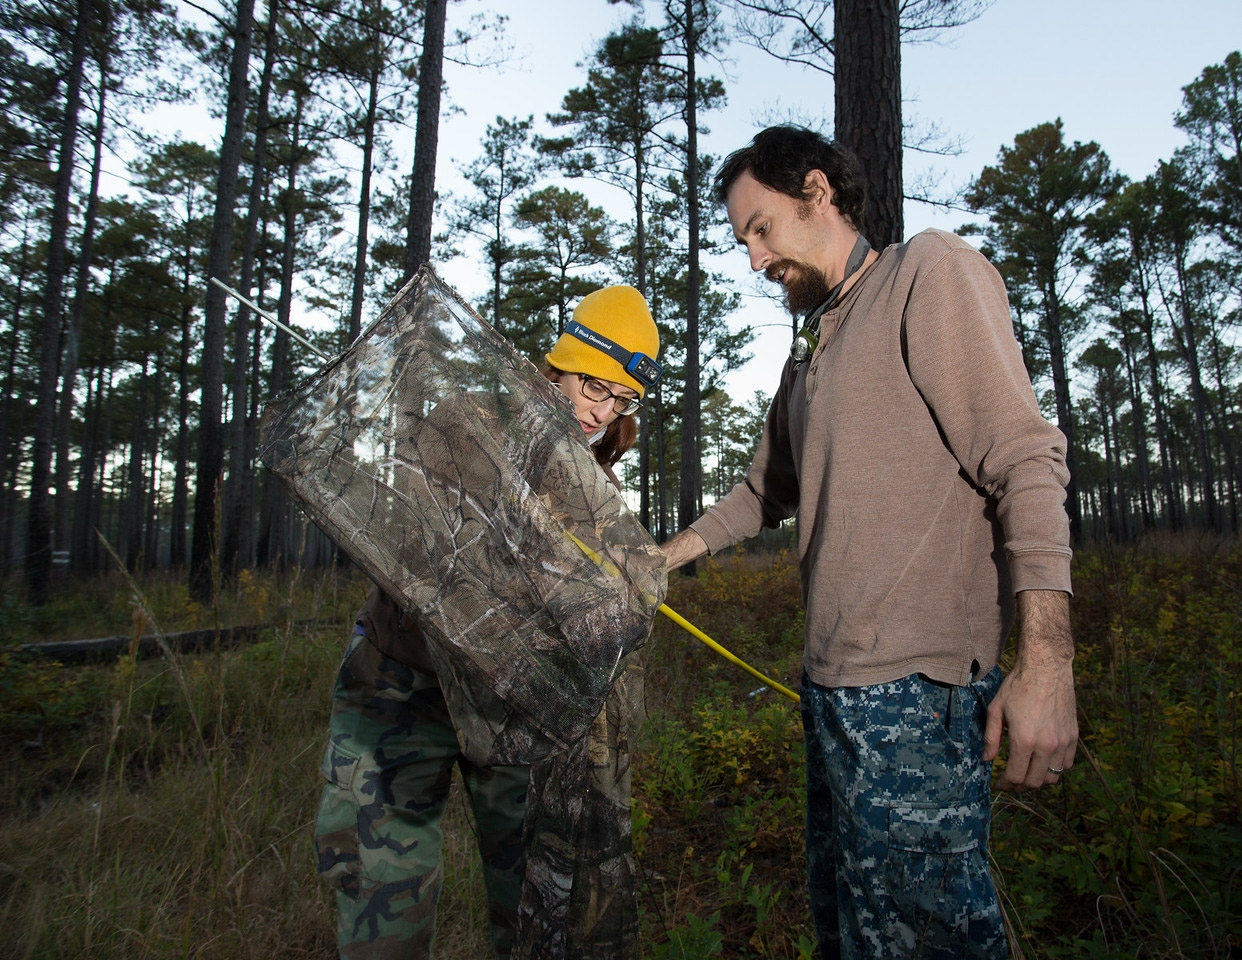 Chance Hines (rt) and Laura Duval (lft) extract a woodpecker from a pole net after capture